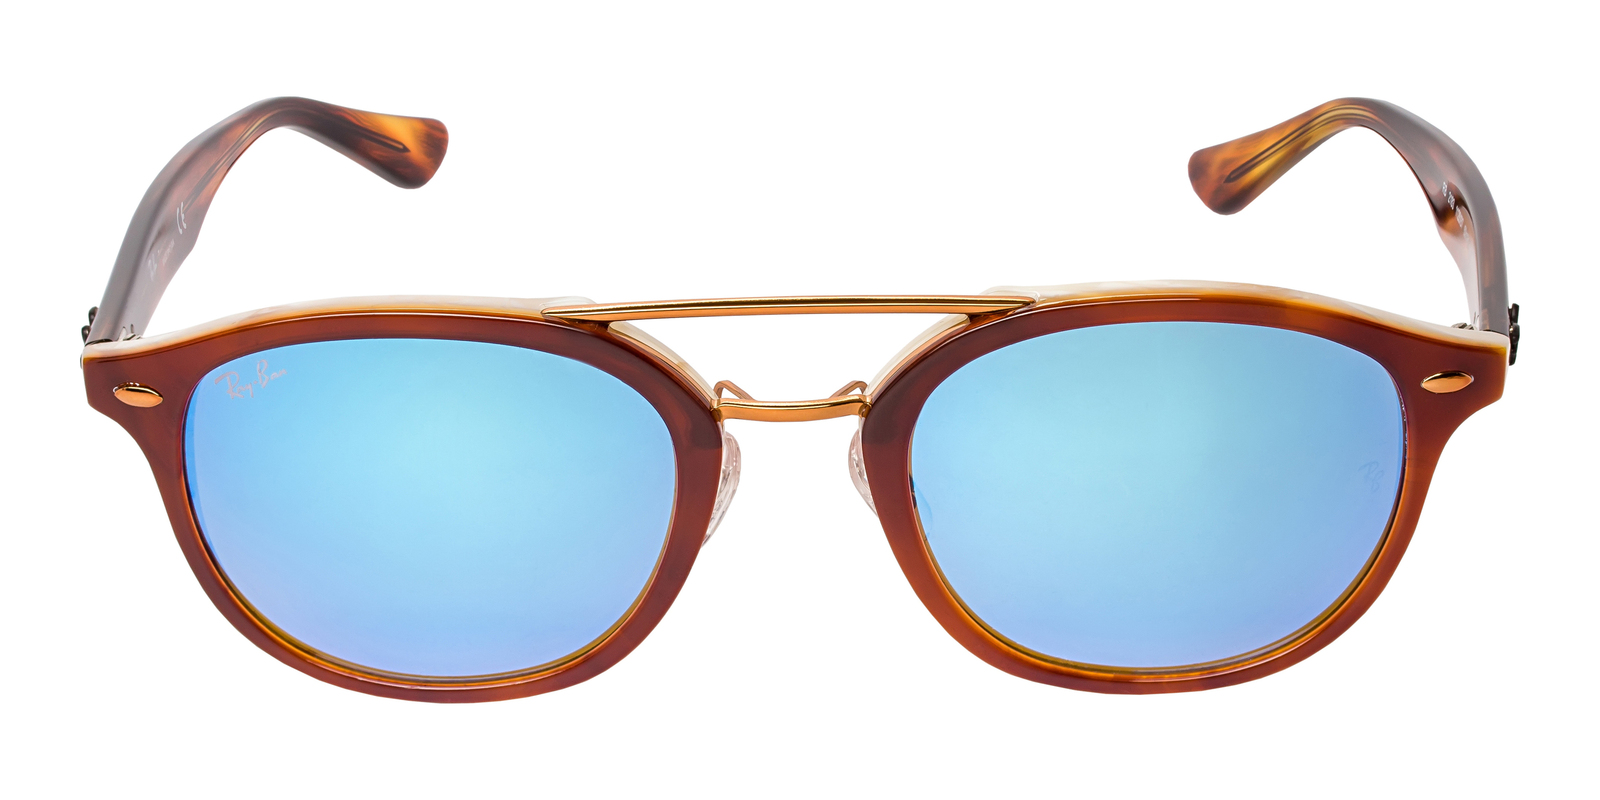 c3af862aaedc6 Ray Ban RB2183 1128B7 53 Women s Tortoise and 50 similar items